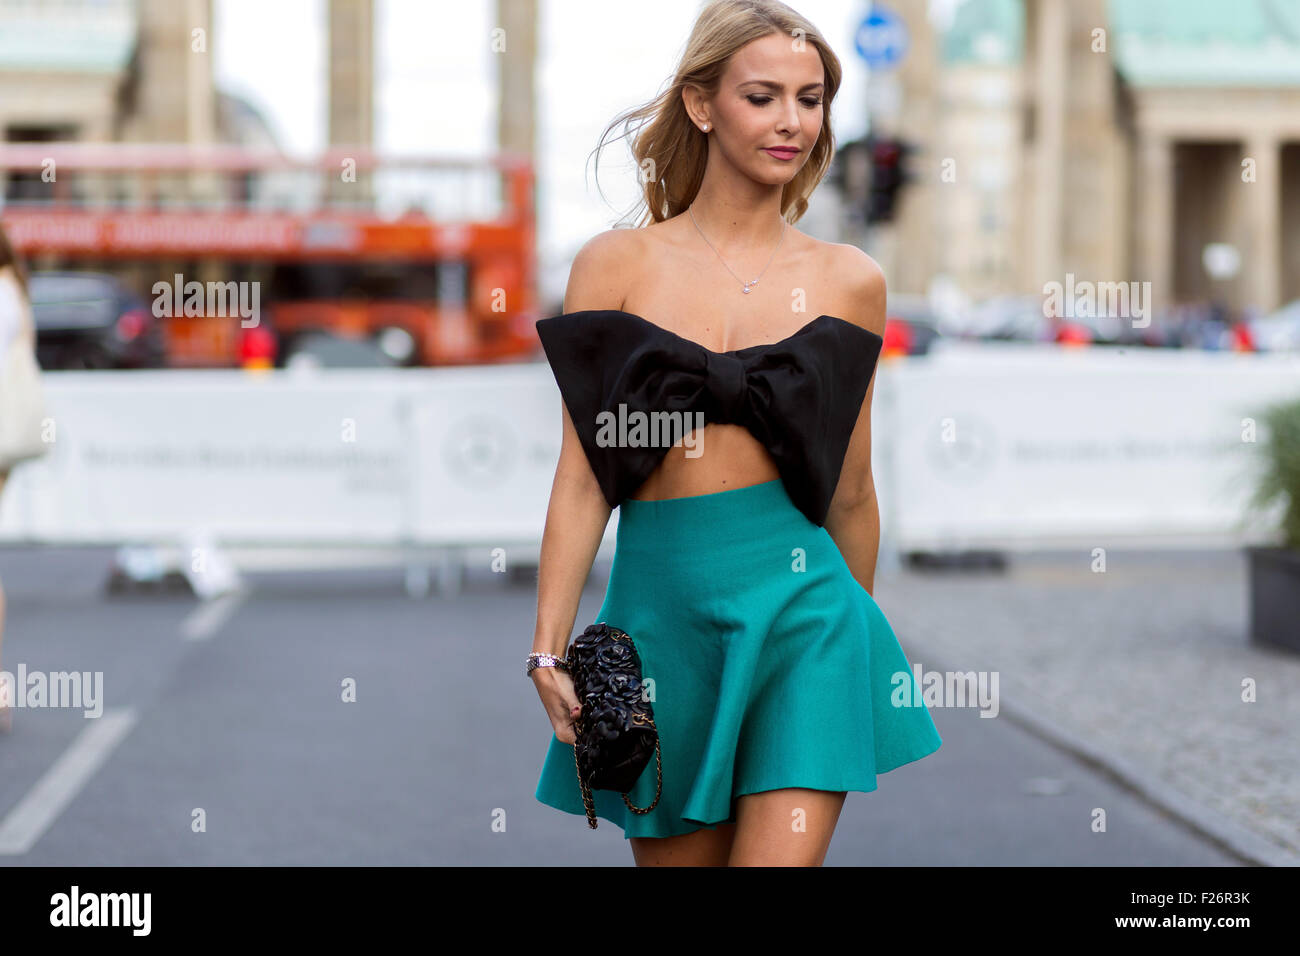 mercedes benz fashion week berlin spring summer 2016 streetstyle stock photo 87430999 alamy. Black Bedroom Furniture Sets. Home Design Ideas